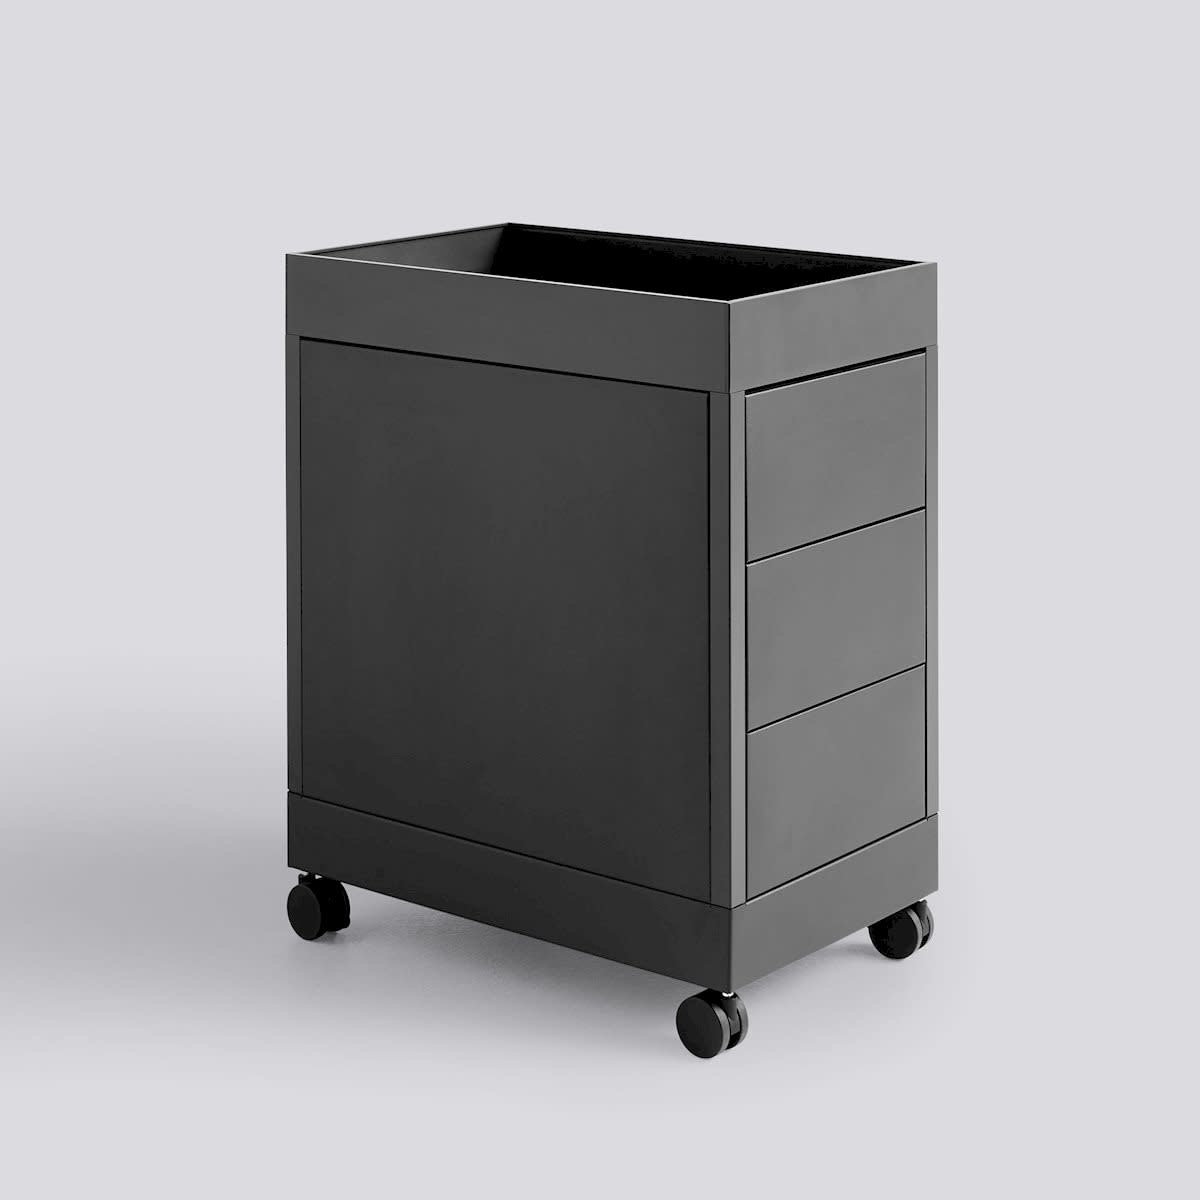 New Order Trolley - B 3 Drawer and tray top incl. lock-1